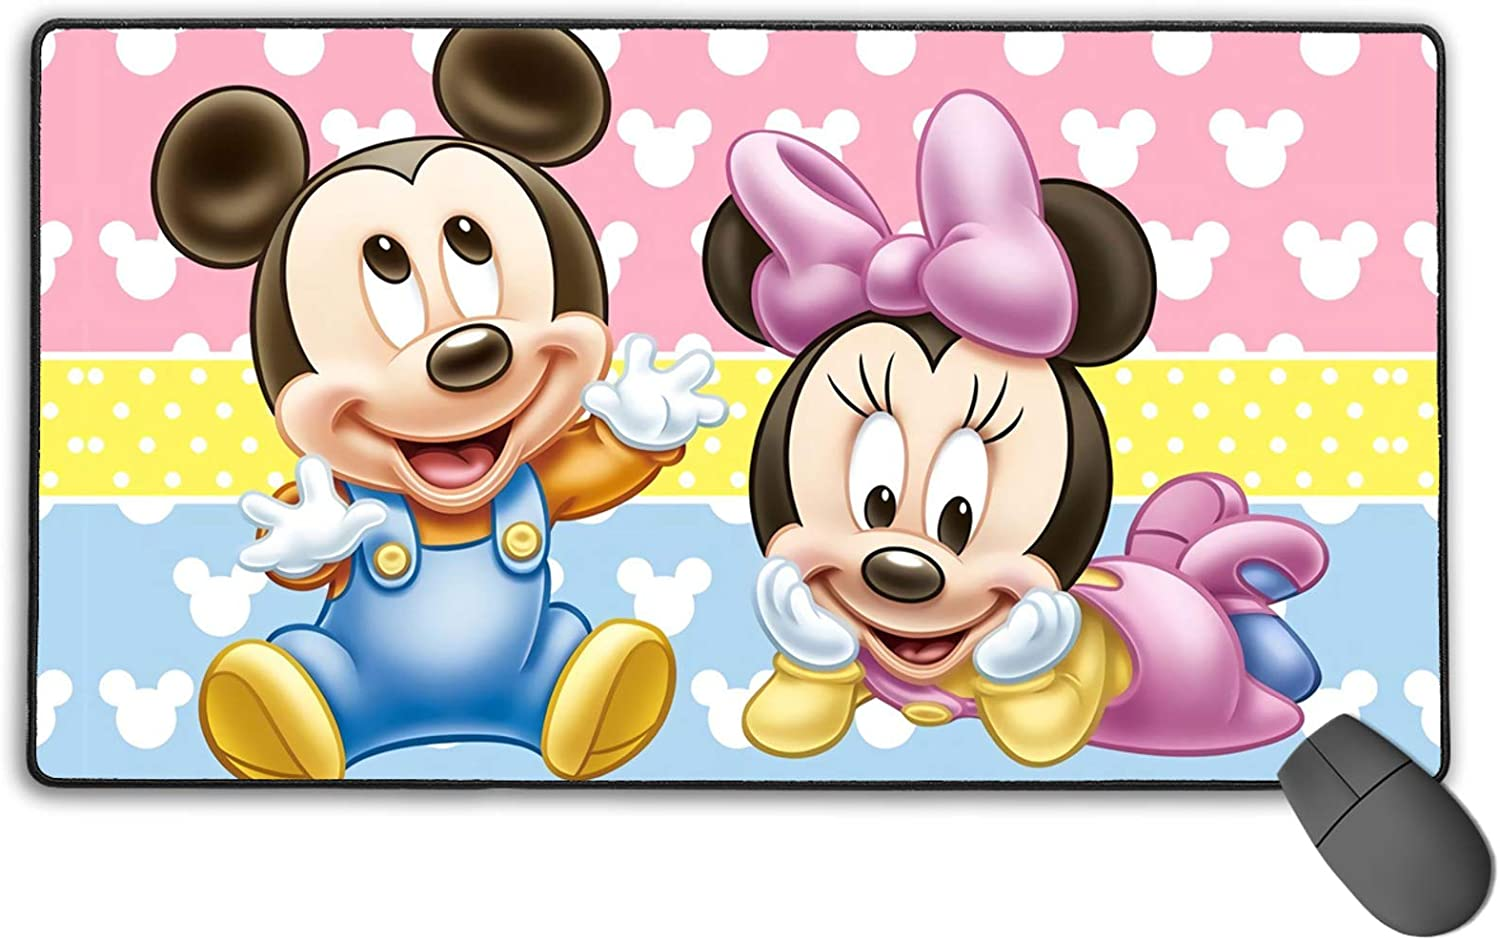 Mic-Key Mouse Pad Popular standard Office Supplies Max 82% OFF for Gaming